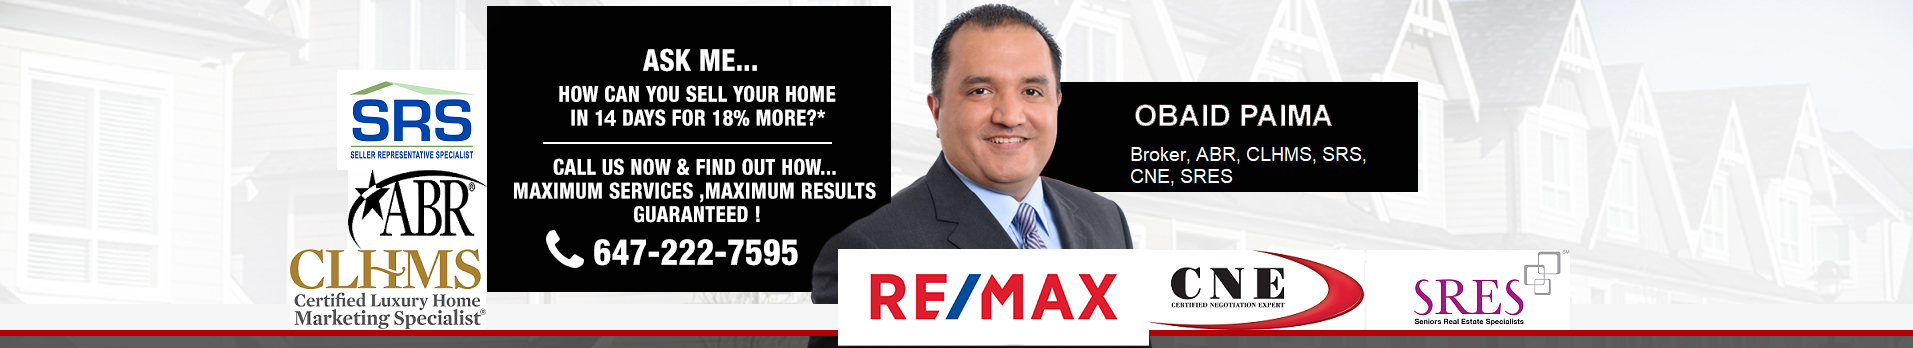 11631 Leslie St,  (MLS® #: N4670007) -  See this detached house for sale in Rural Richmond Hill, Richmond Hill